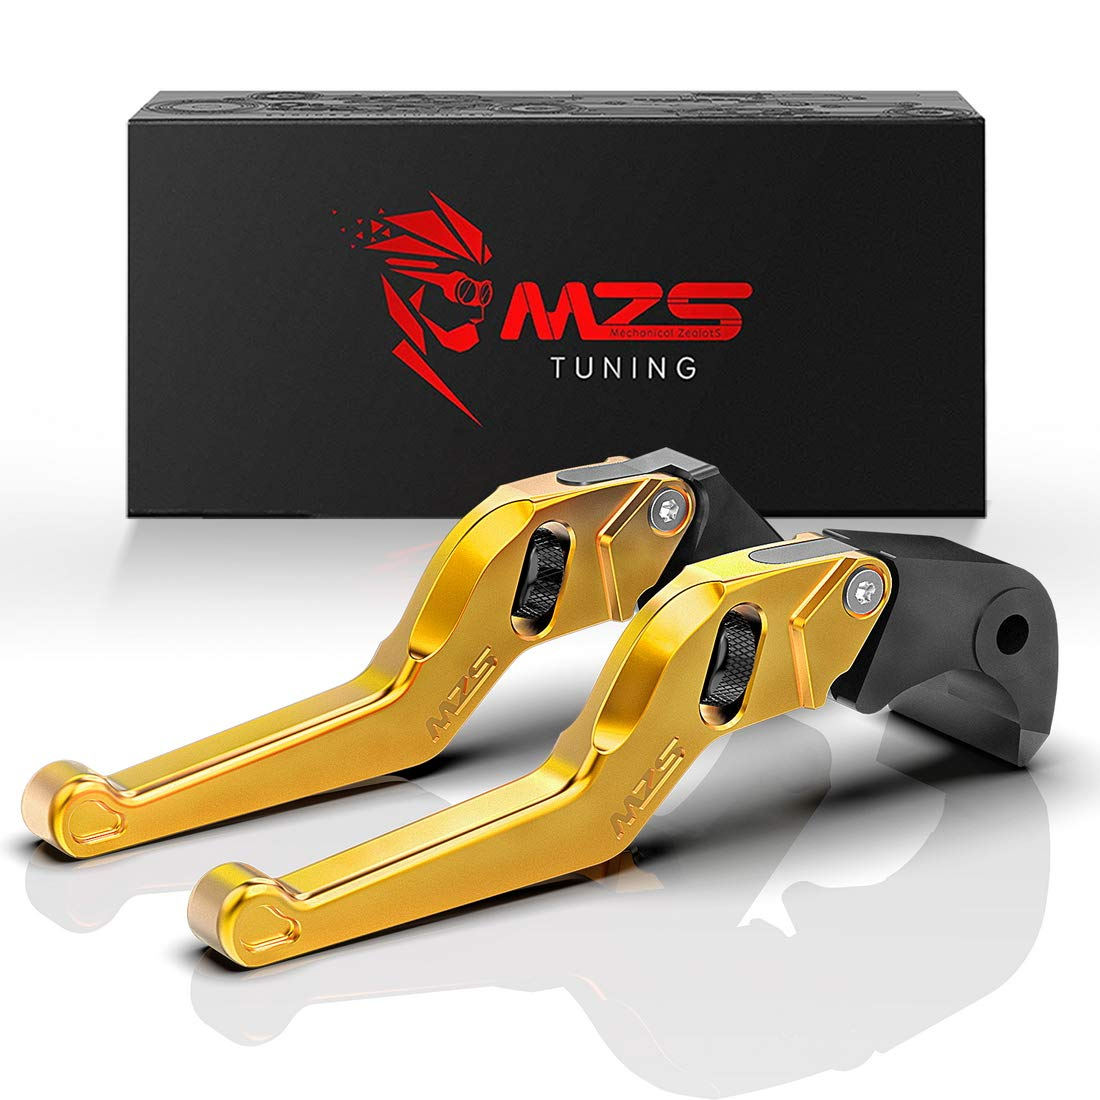 MZS Gold Short Levers Wheel Roller Brake Clutch Adjustment for CMX 300 500 Rebel Fury VTX1300CX VT750 Phantom Shadow NC750S NC750X Black Spirit